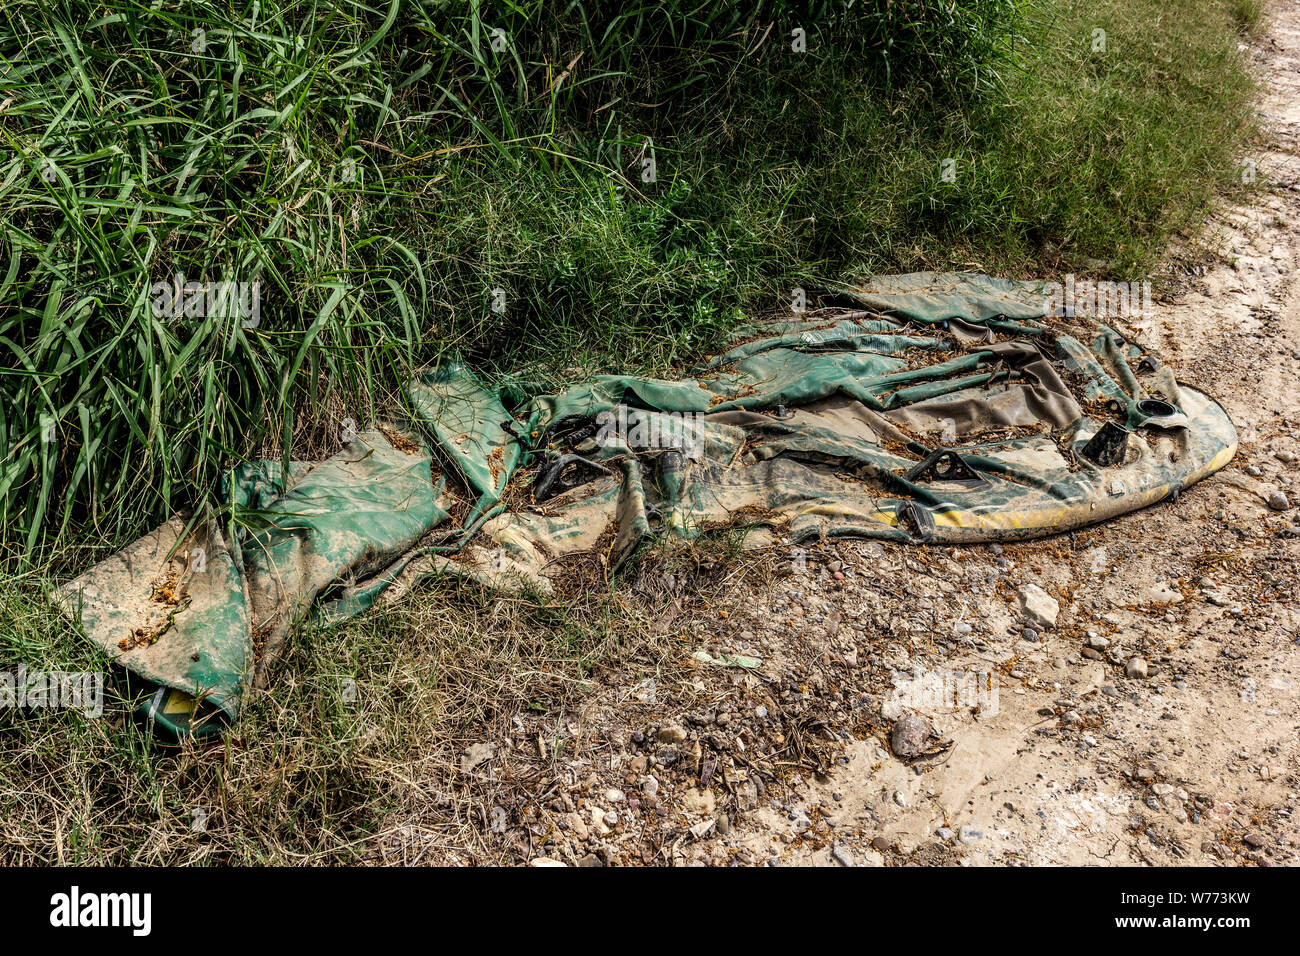 Discarded rafts used by migrants to cross the Rio Grande River, found on the USA side in Roma, Texas, USA Stock Photo